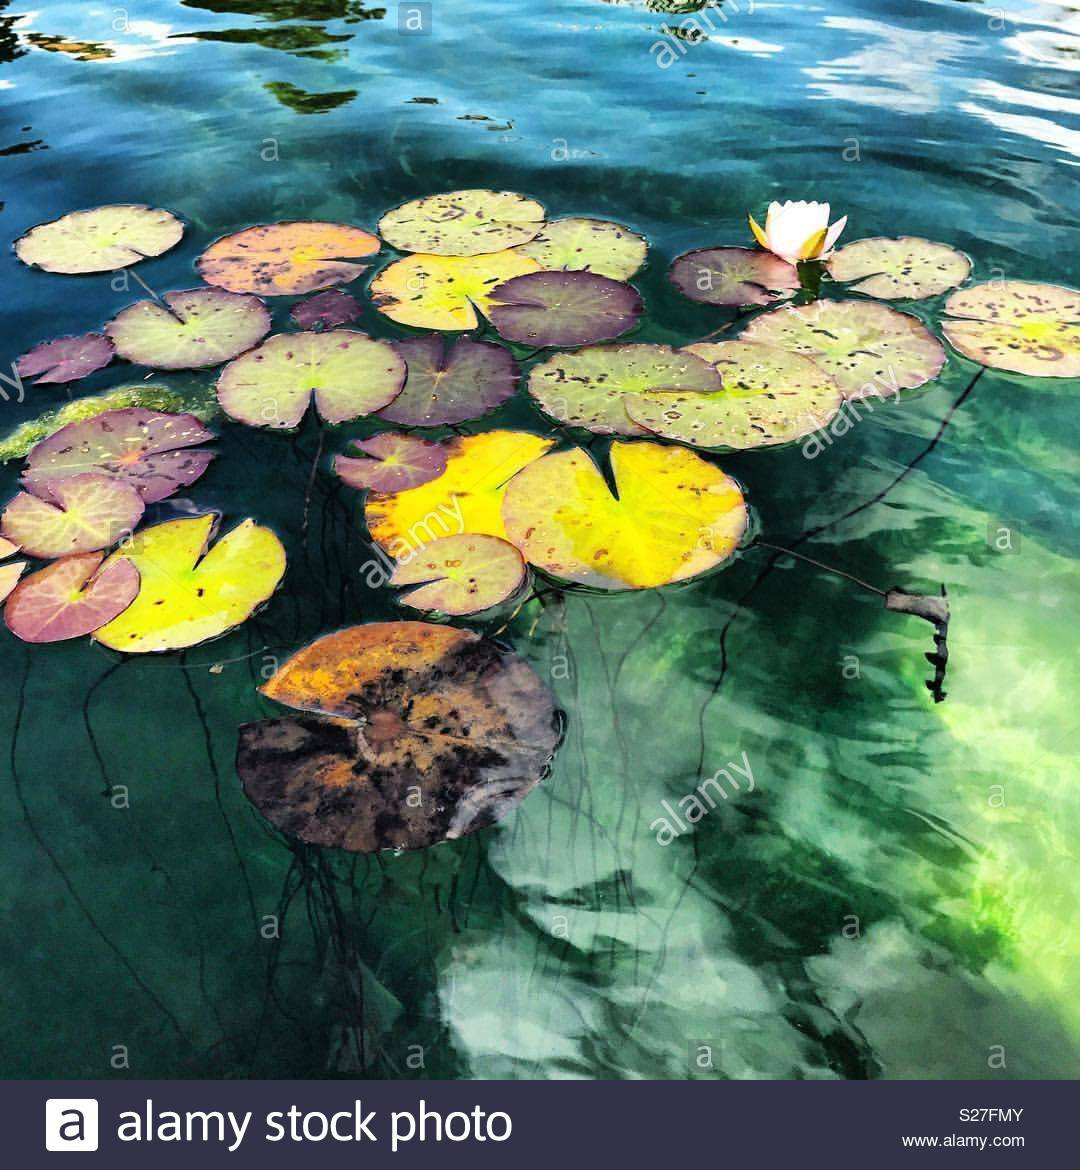 Lilly pads floating in beautiful green colored water - Stock Image